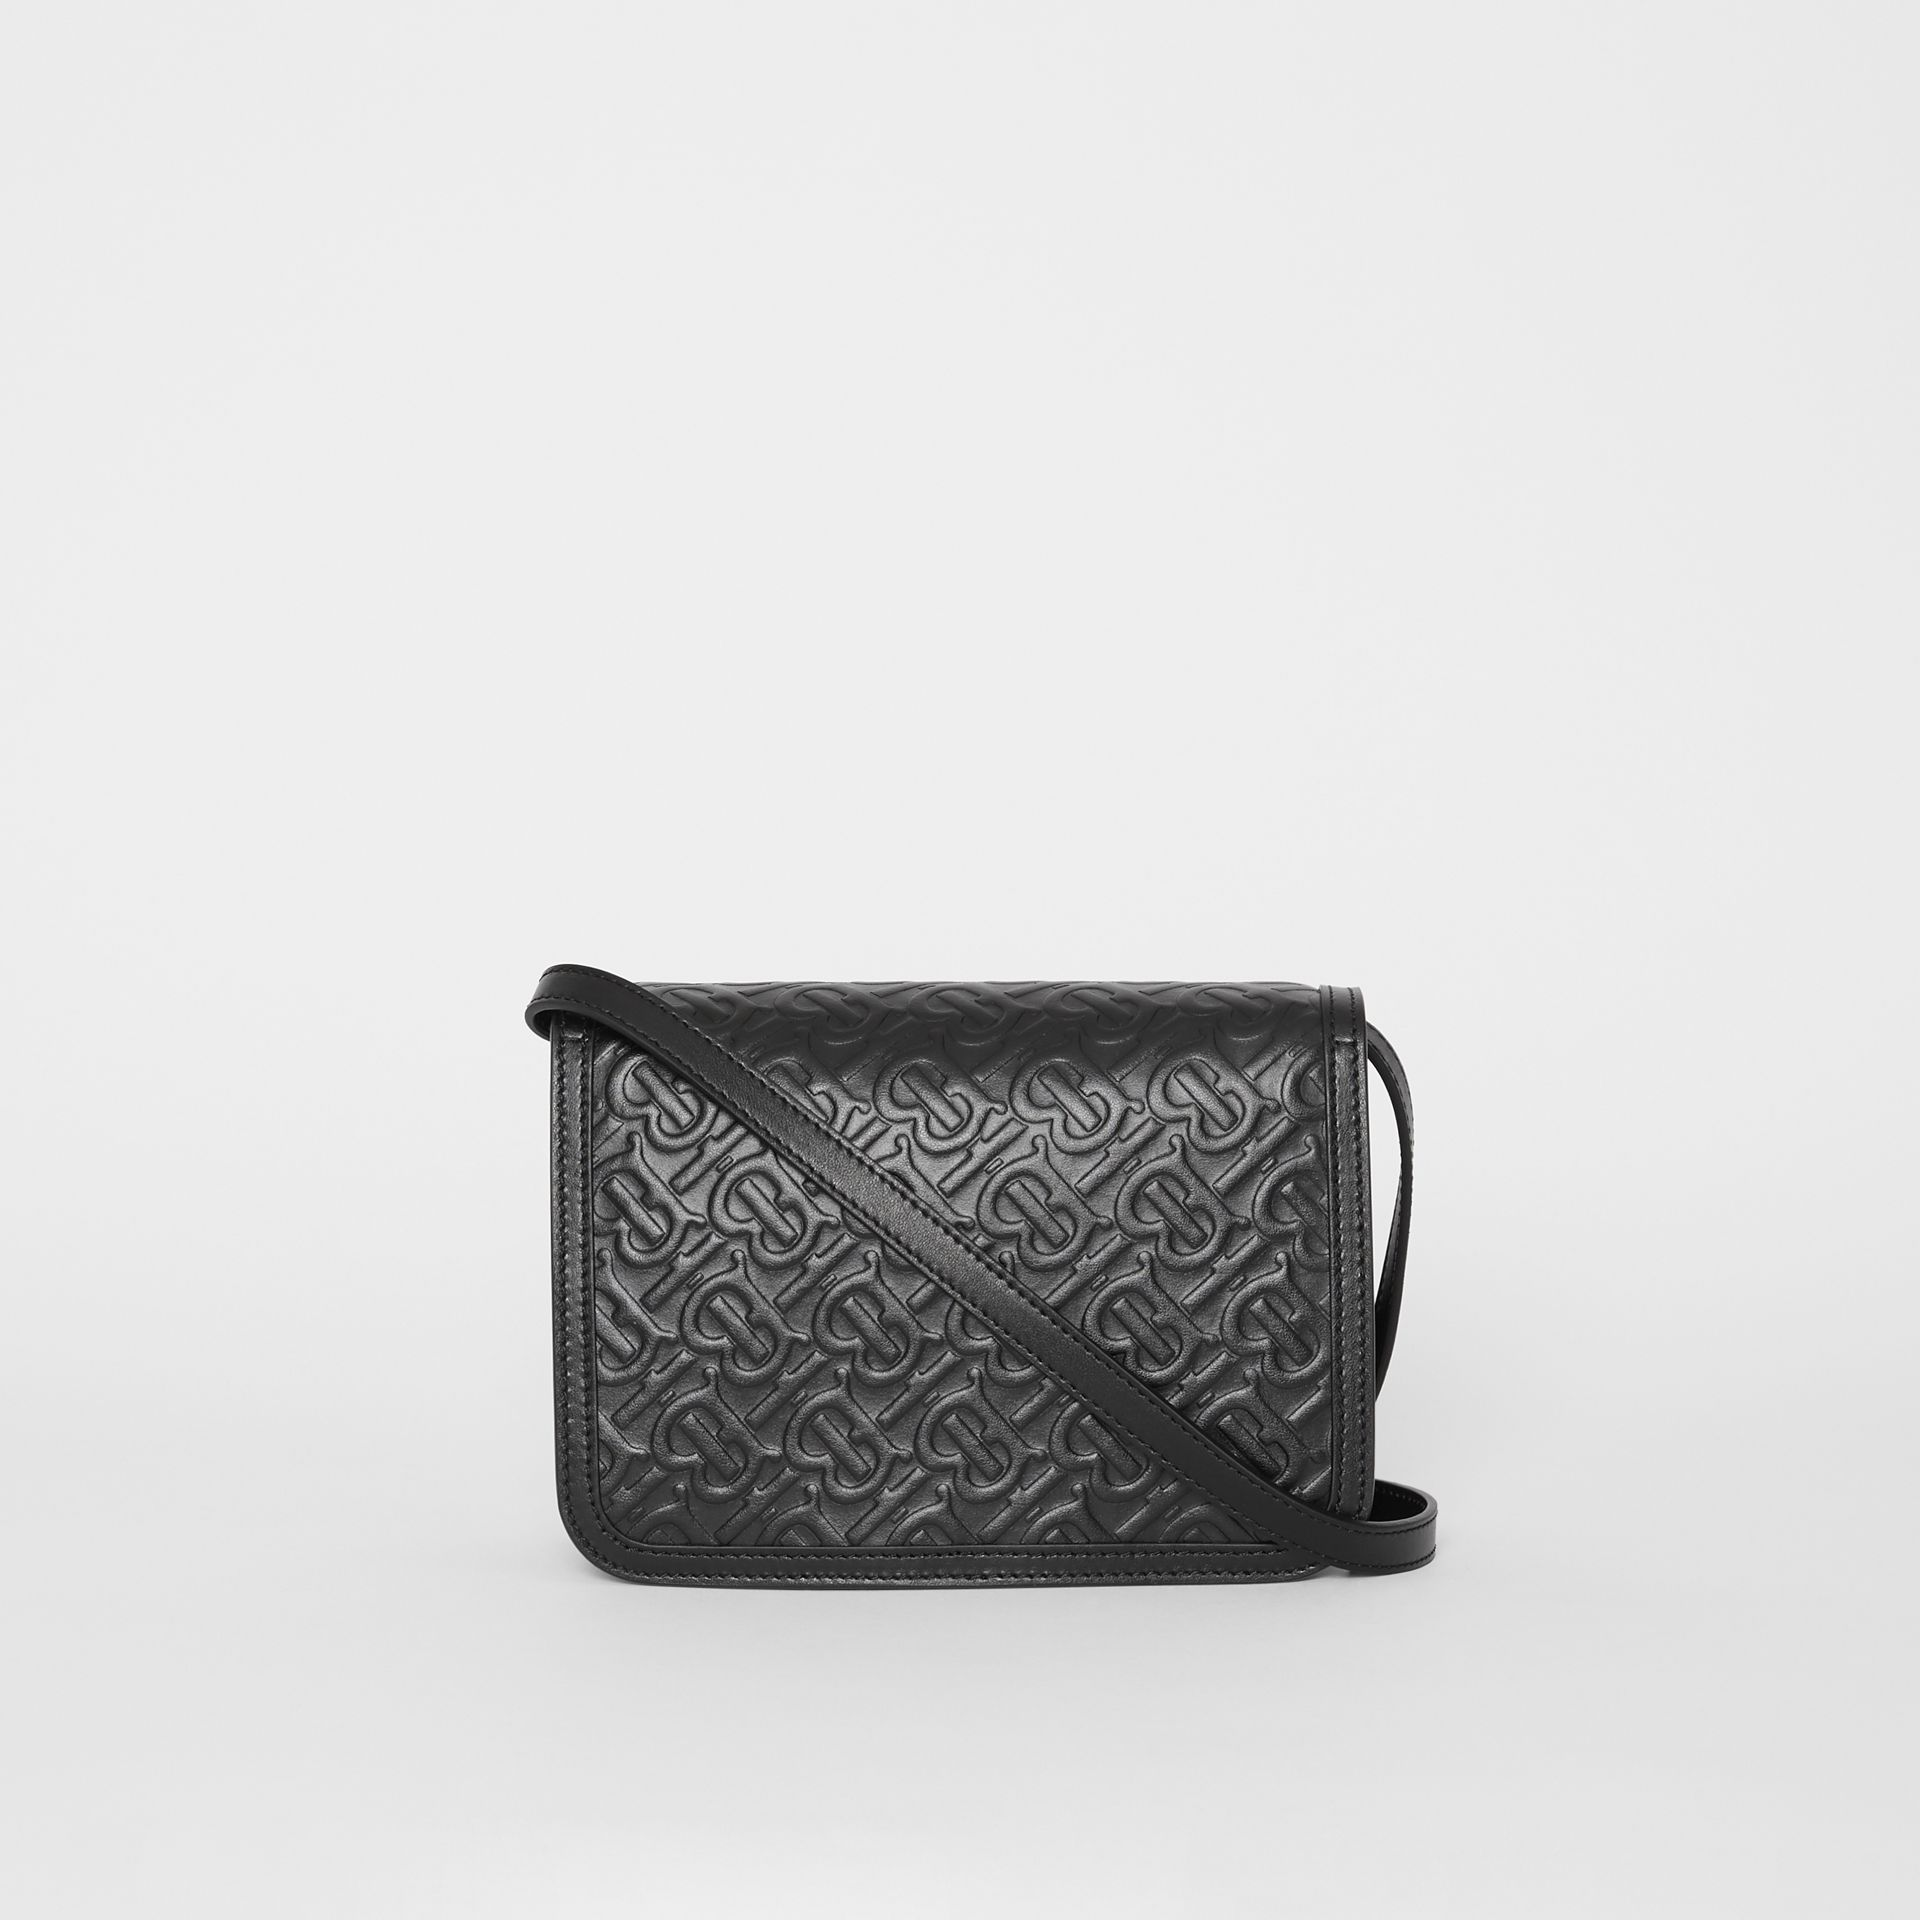 Small Monogram Leather TB Bag in Black - Women | Burberry - gallery image 7